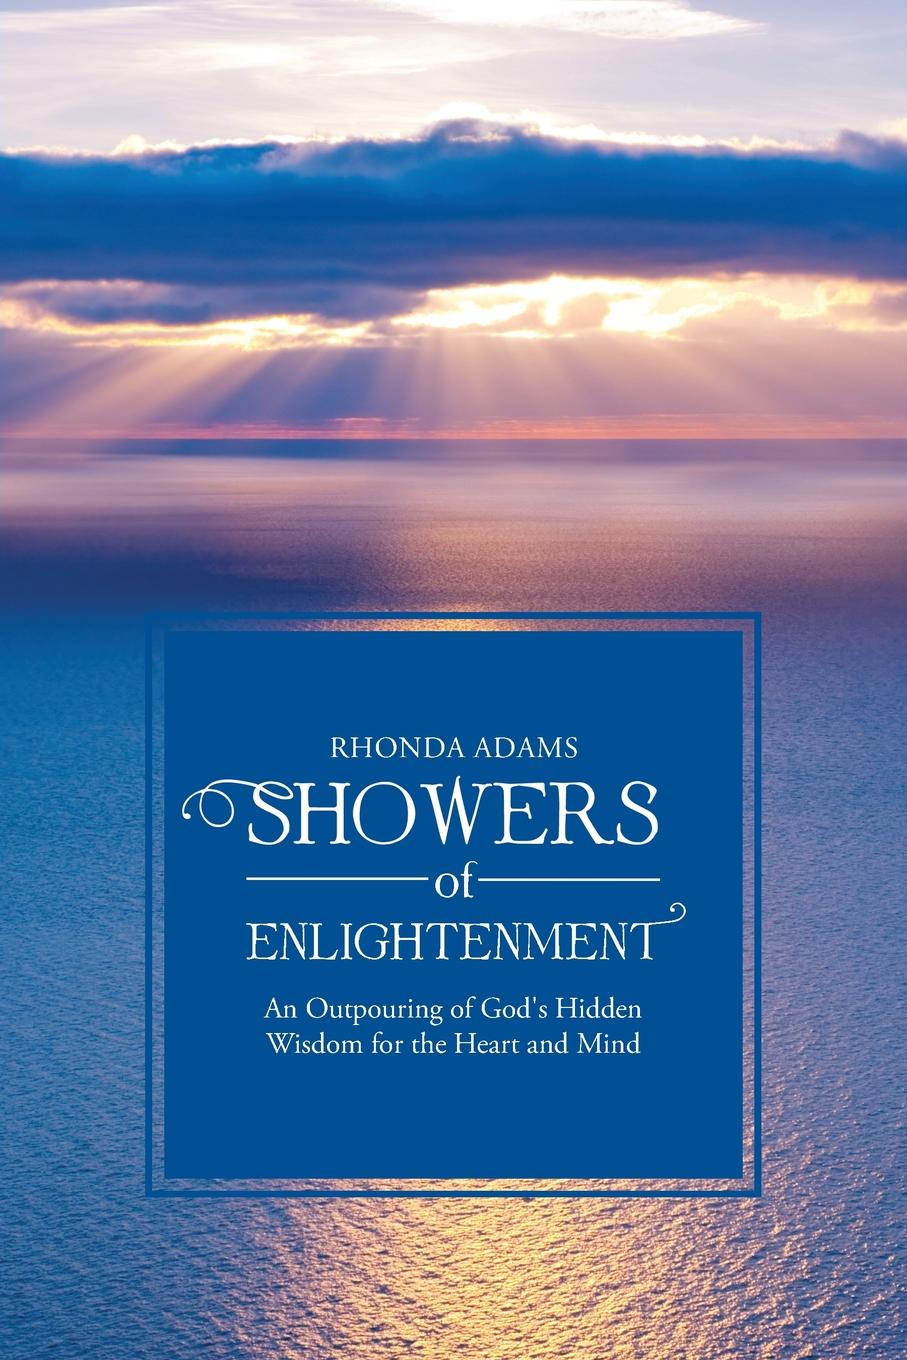 Rhonda Adams SHOWERS of ENLIGHTENMENT An Outpouring of God's Hidden Wisdom for the Heart and Mind